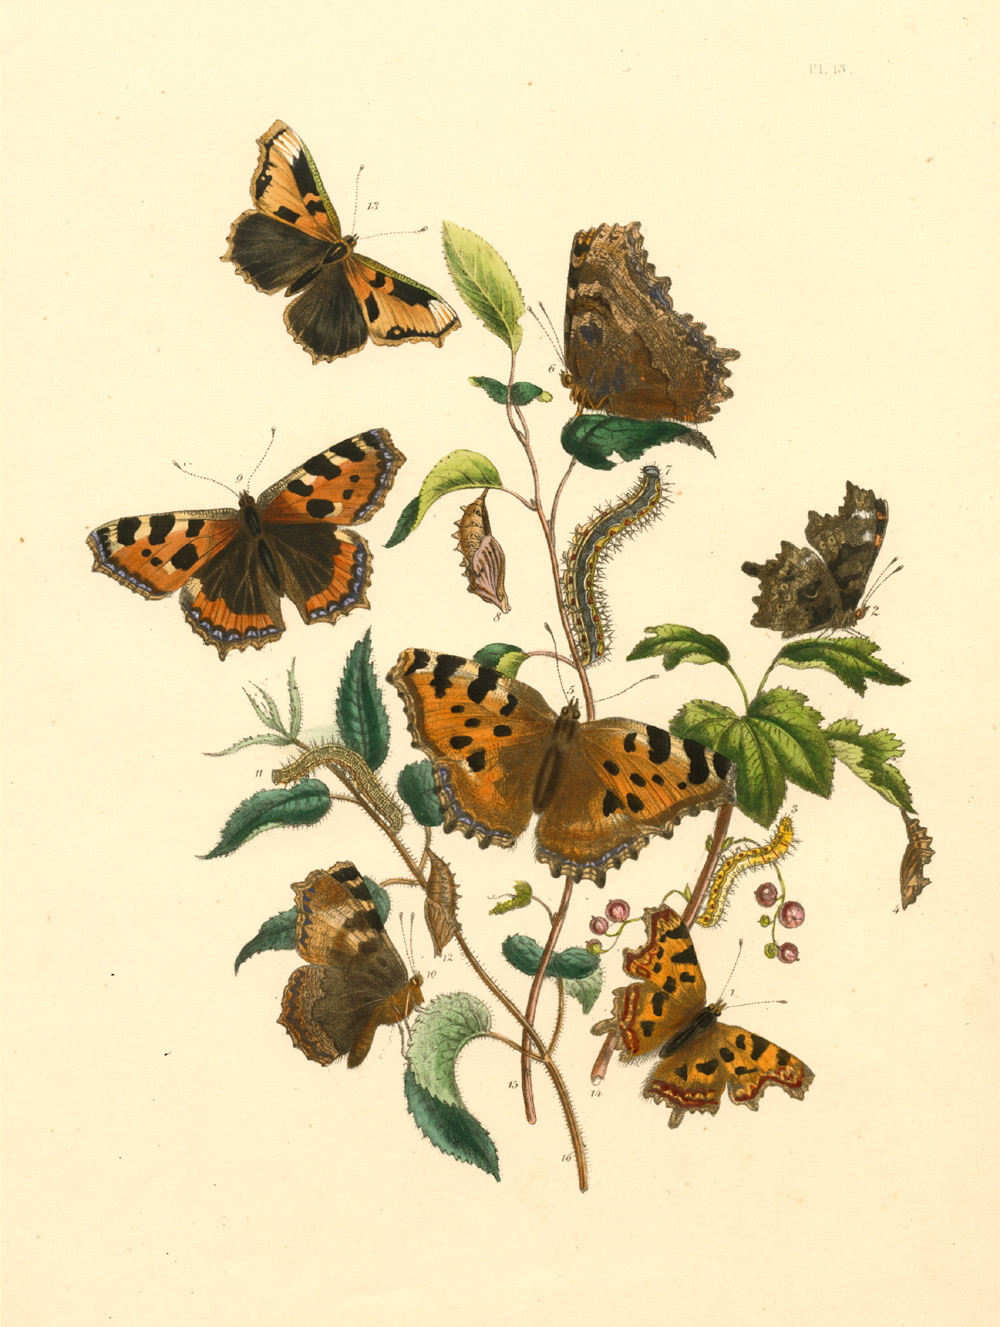 Vanessa Album, Polychloros, Urticae, Red Currant, Elm, Stinging Nettle.